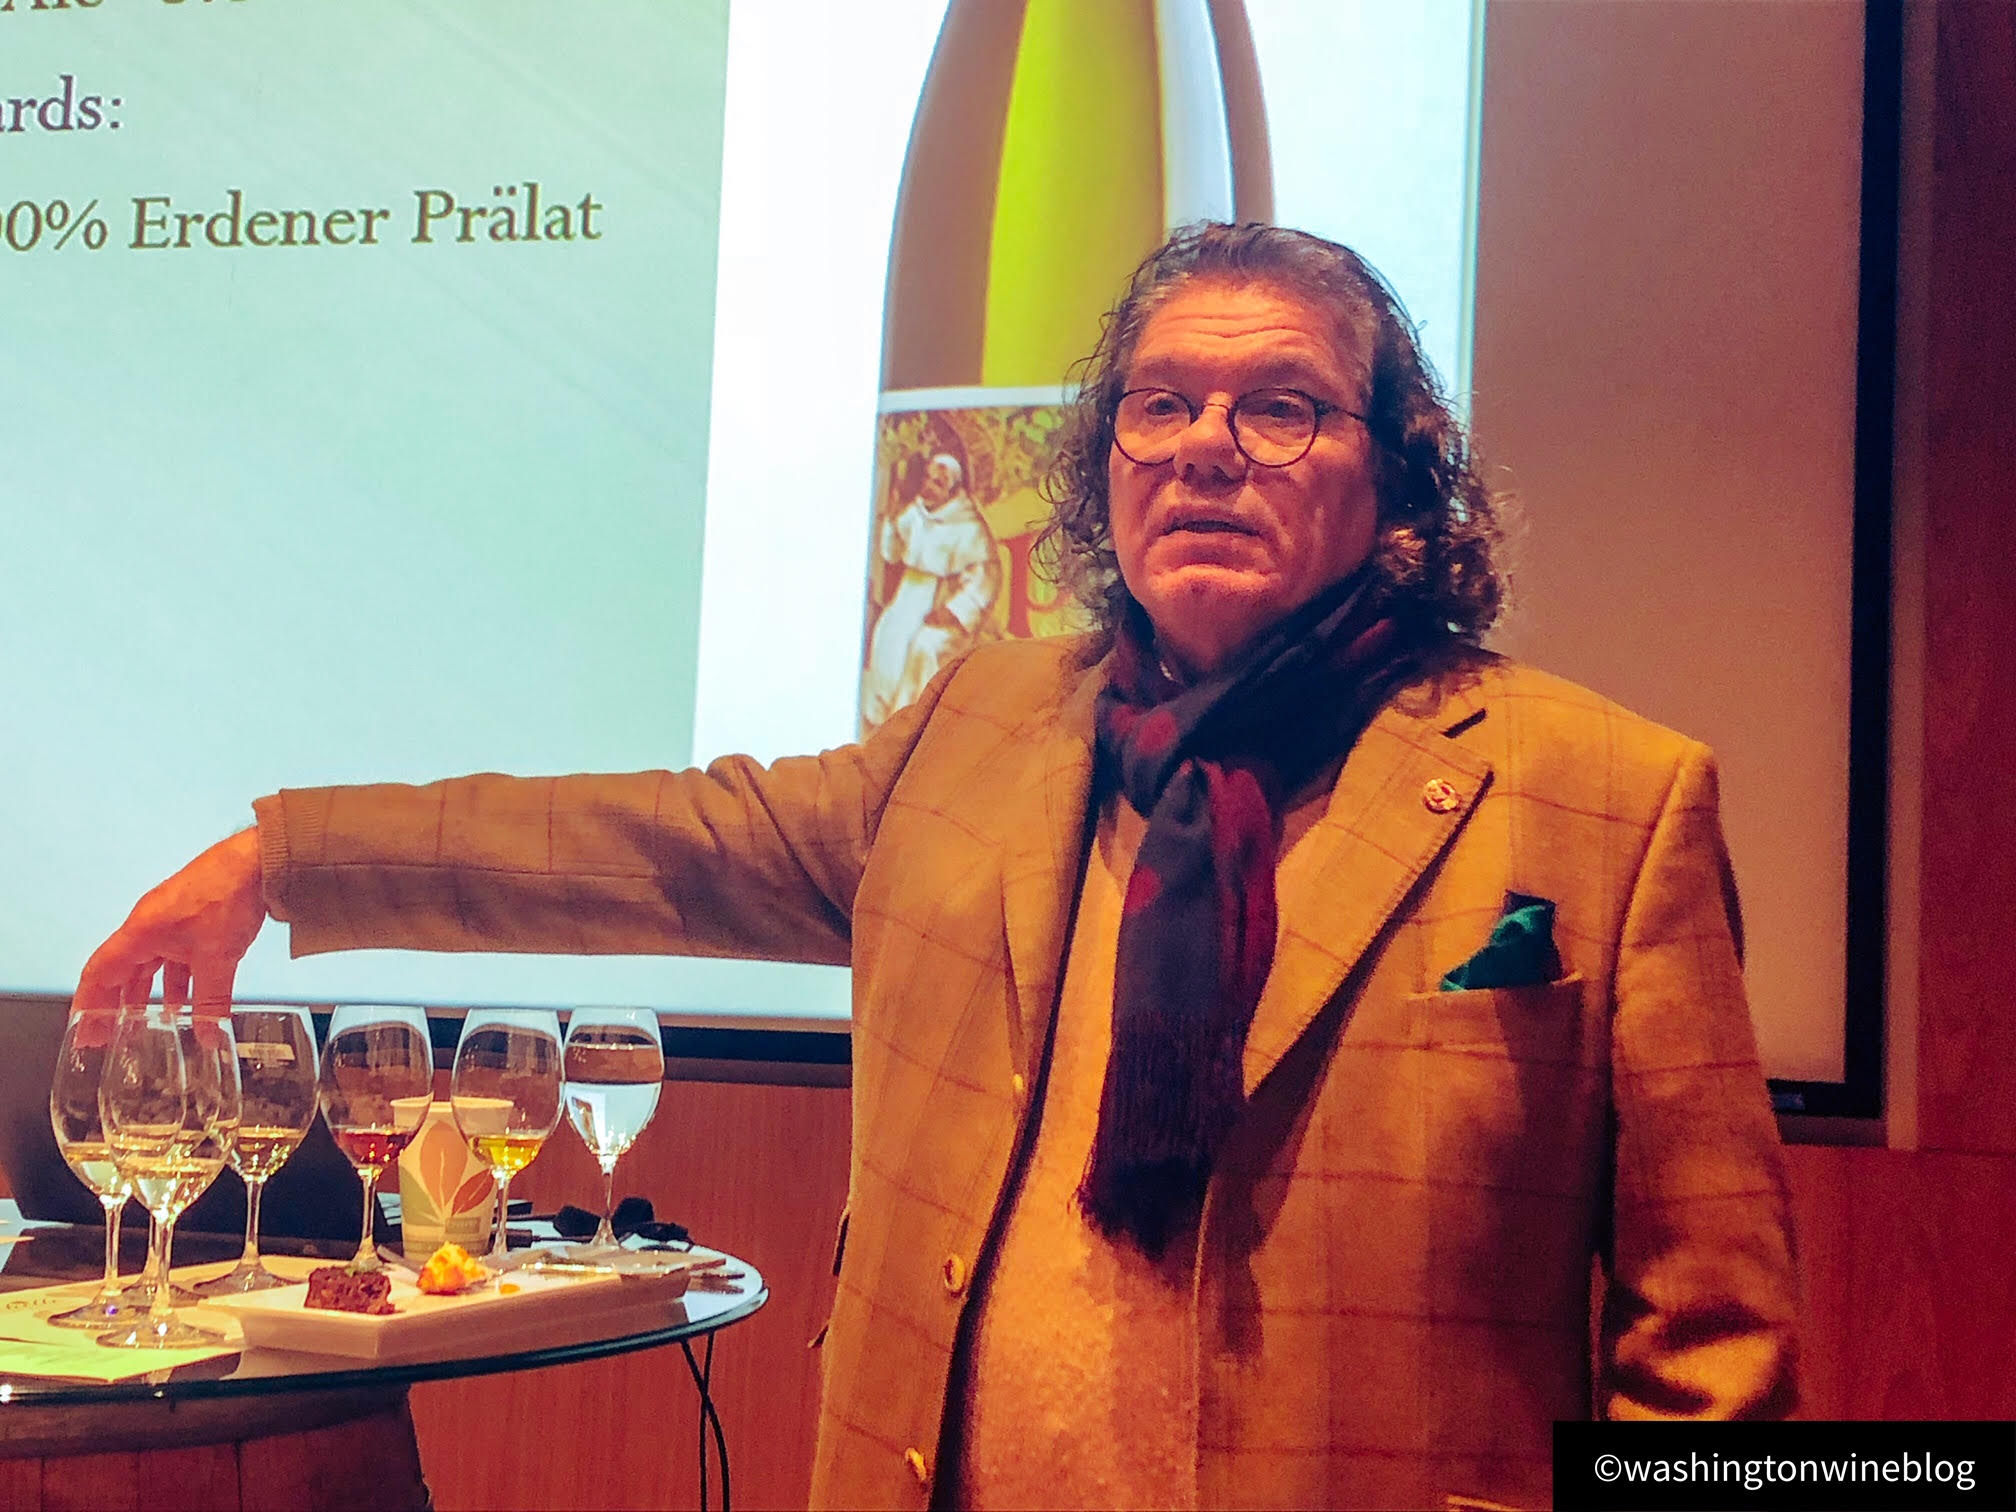 Great photo here of Dr. Ernst Loosen at Chateau Ste. Michelle as he lectures on his beautiful wines.